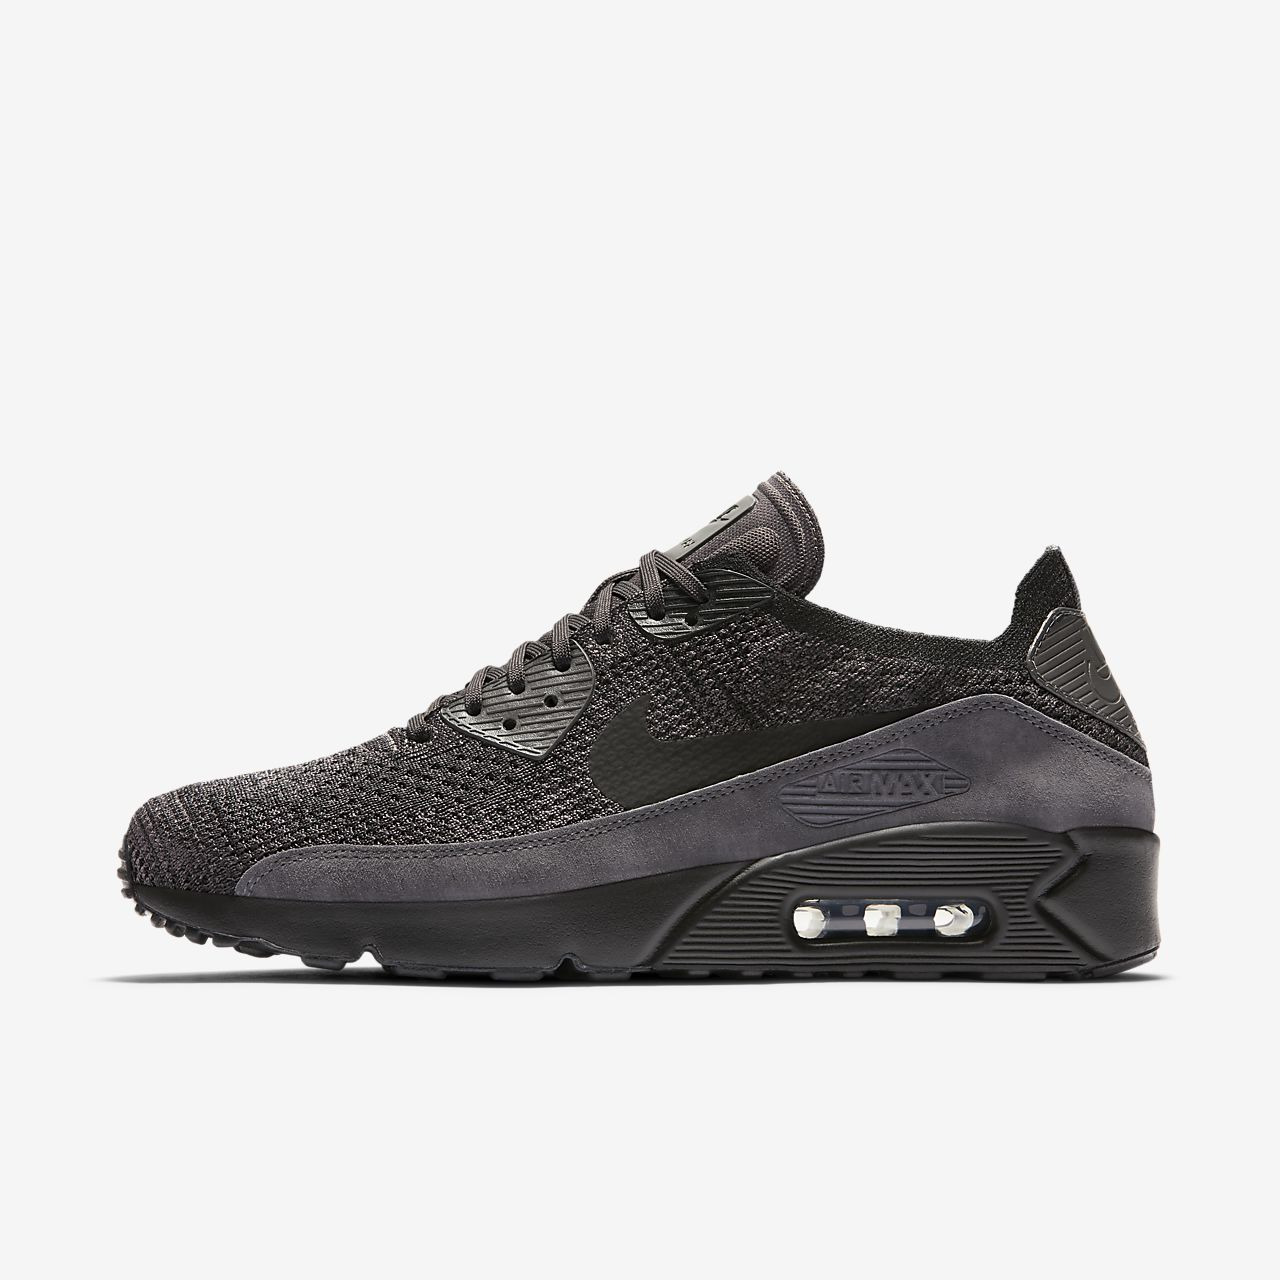 nike air max 90 mens shoes black gray 5037183800